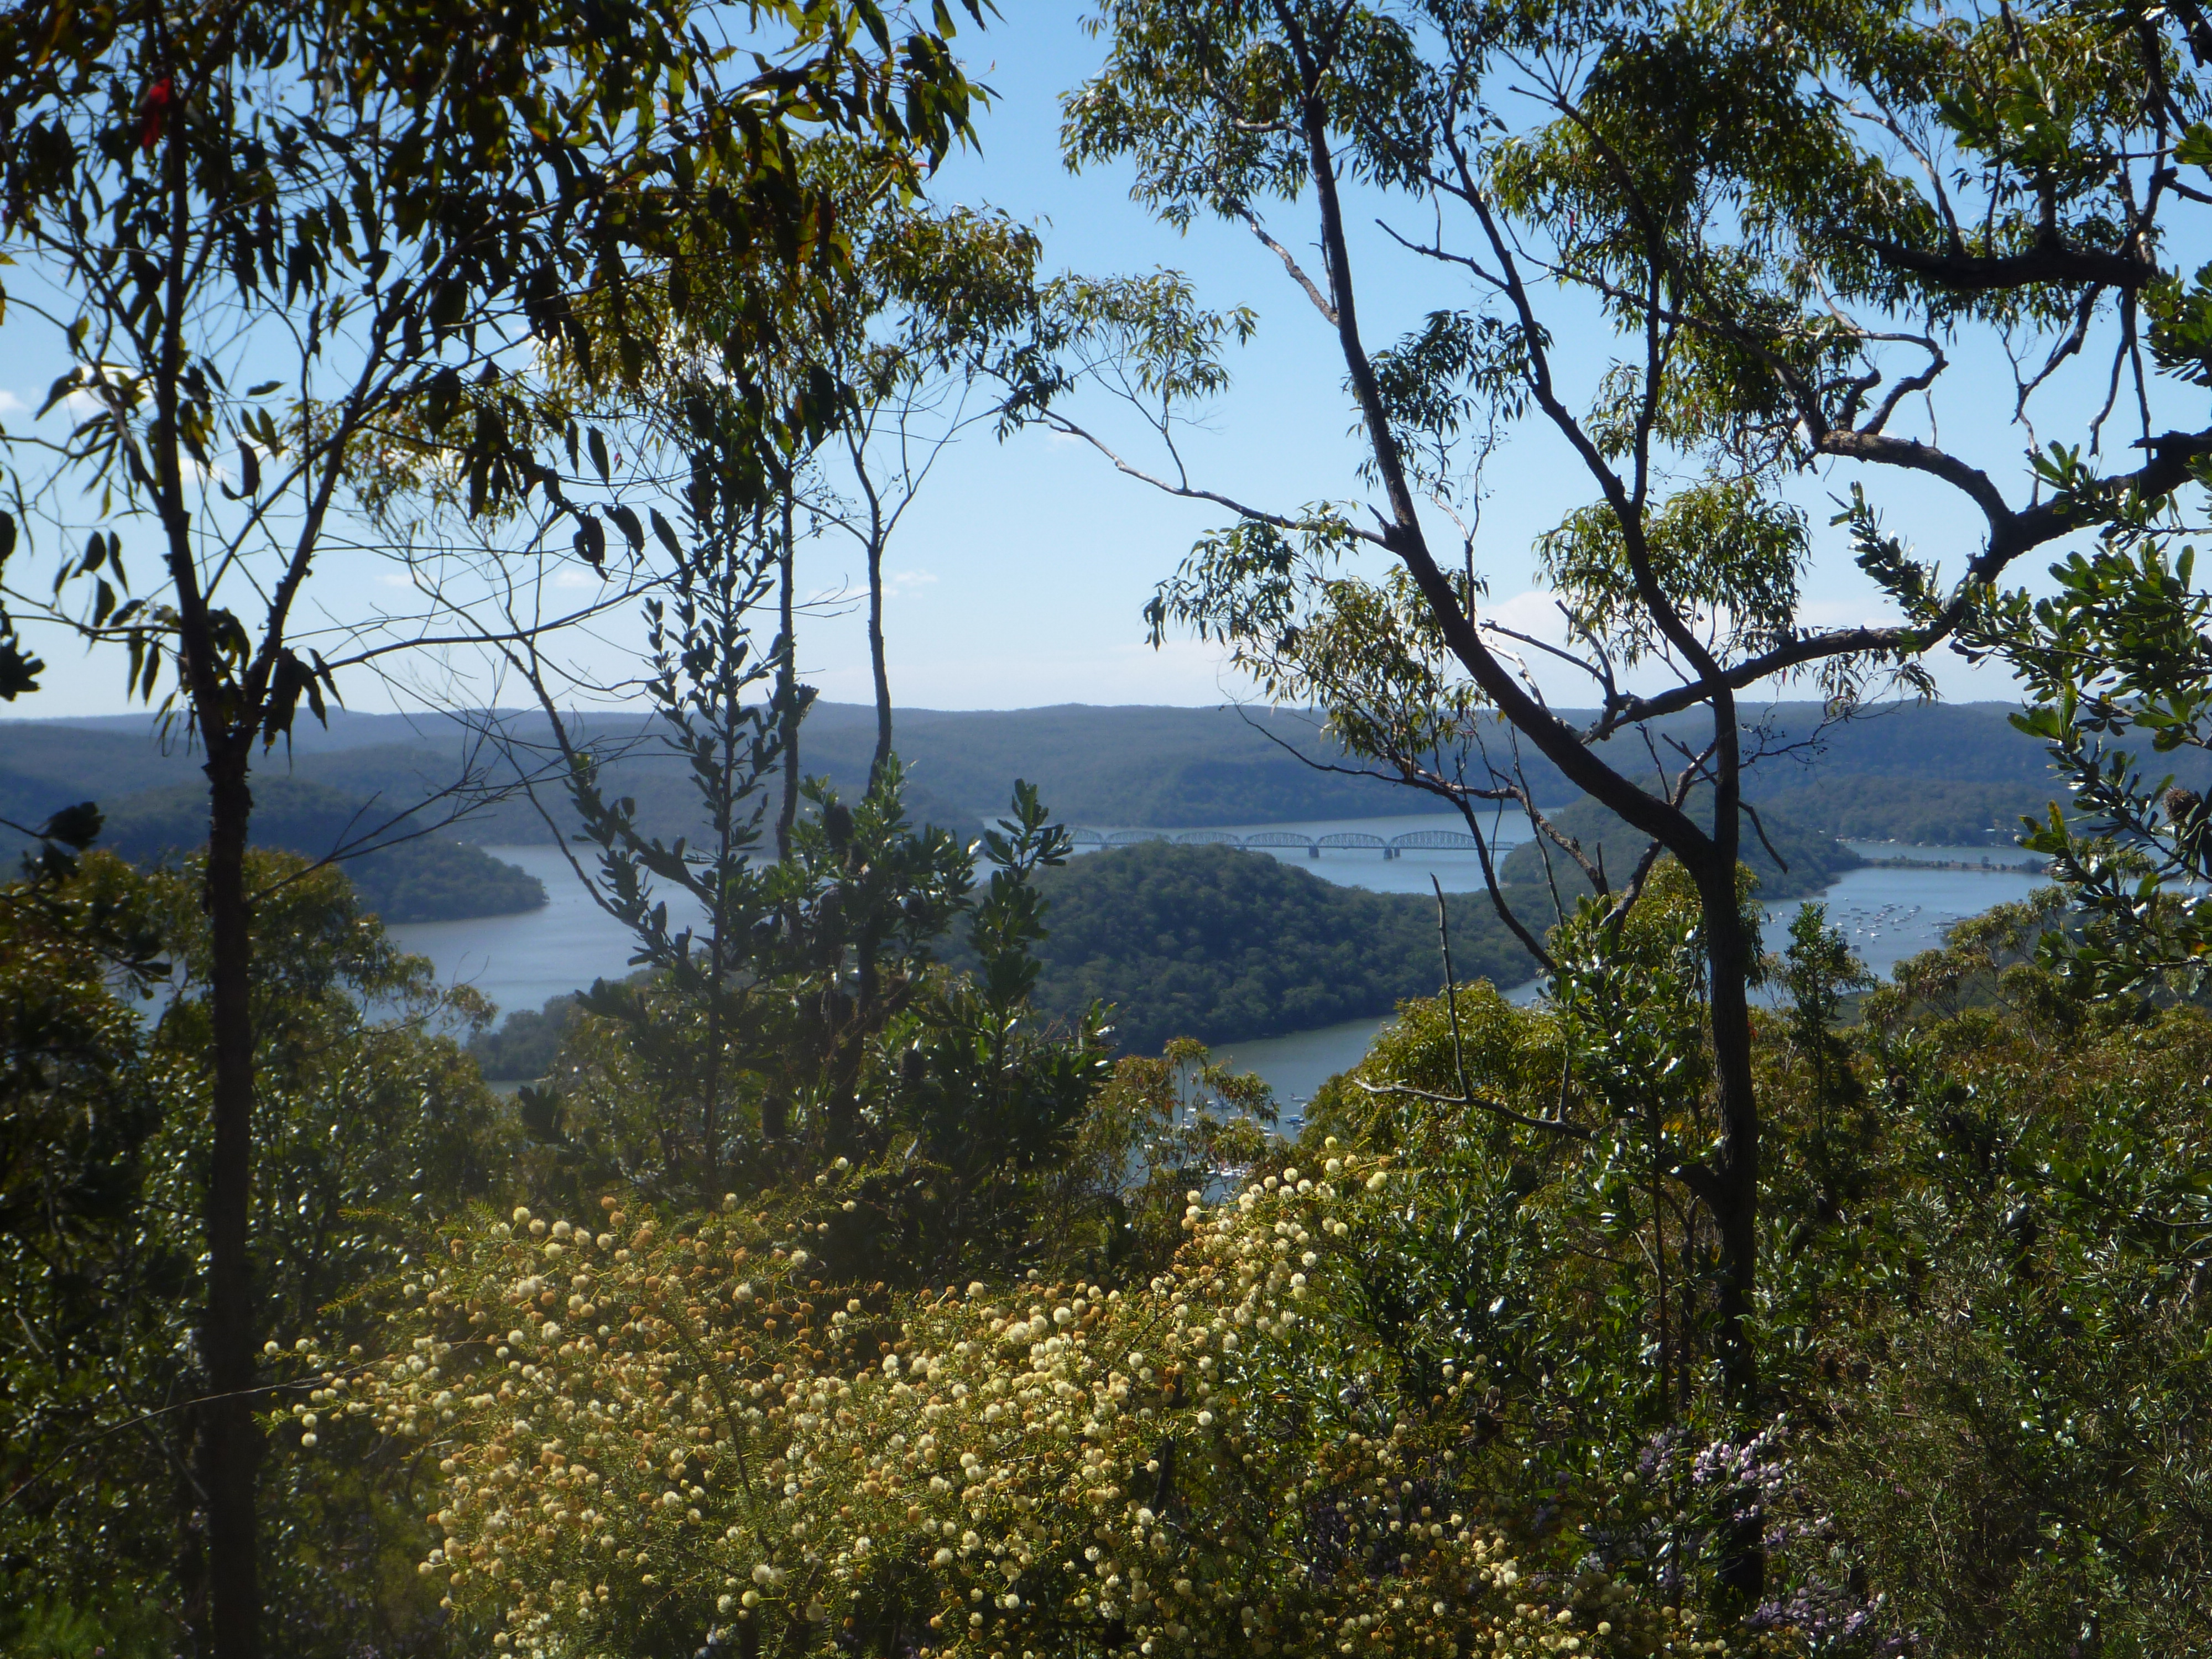 The view of the Hawkesbury from the tops